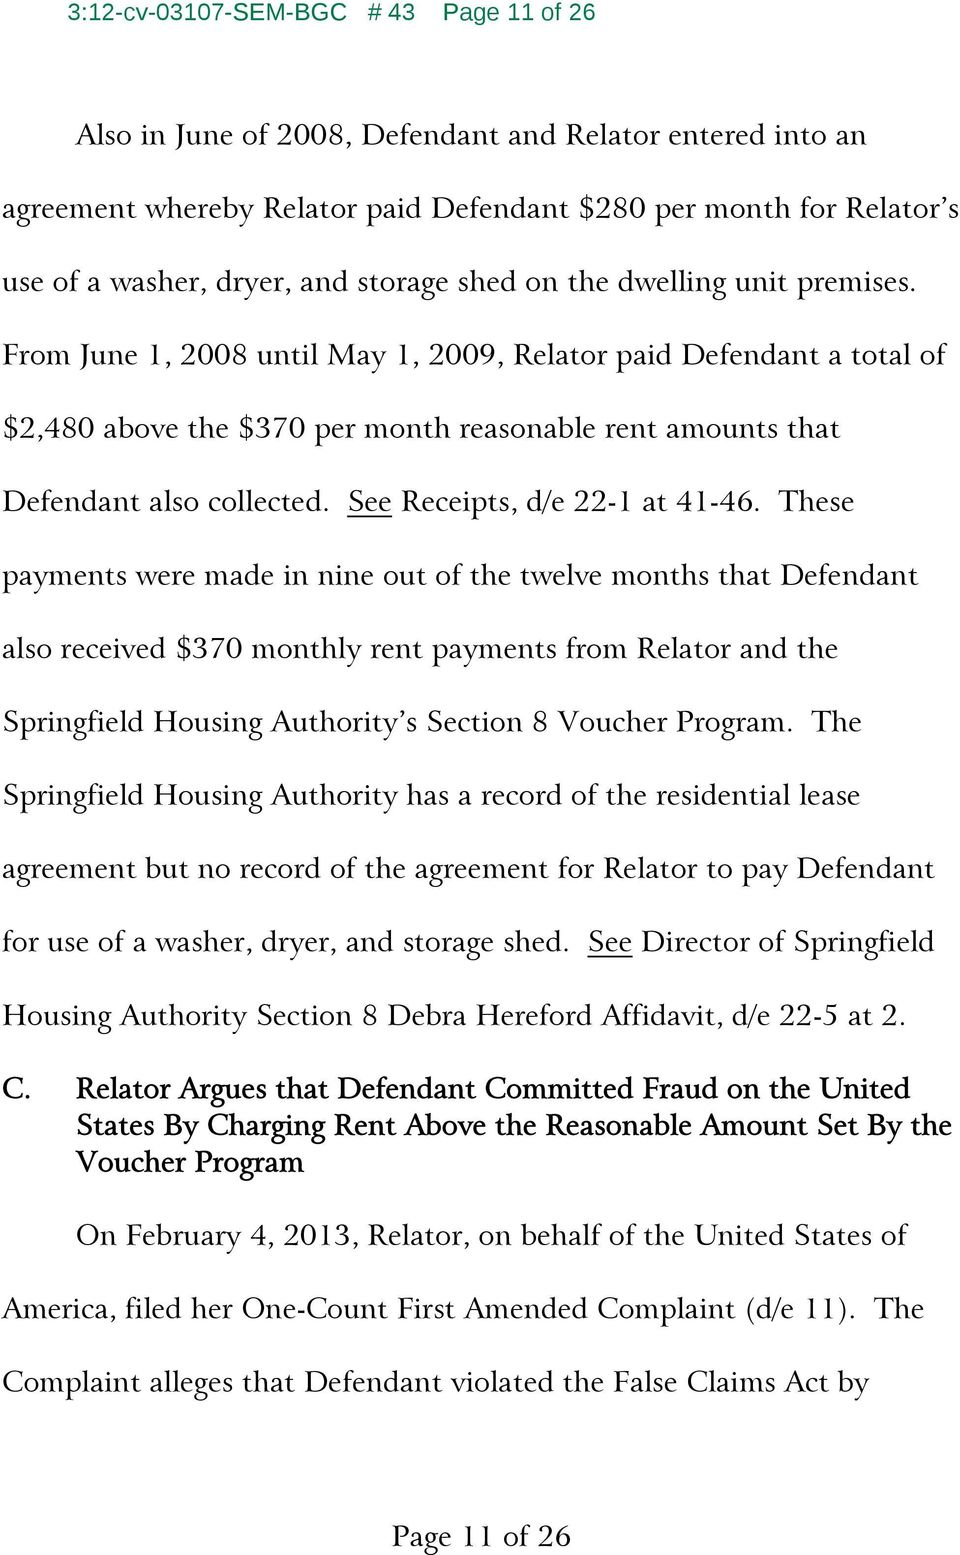 From June 1, 2008 until May 1, 2009, Relator paid Defendant a total of $2,480 above the $370 per month reasonable rent amounts that Defendant also collected. See Receipts, d/e 22-1 at 41-46.